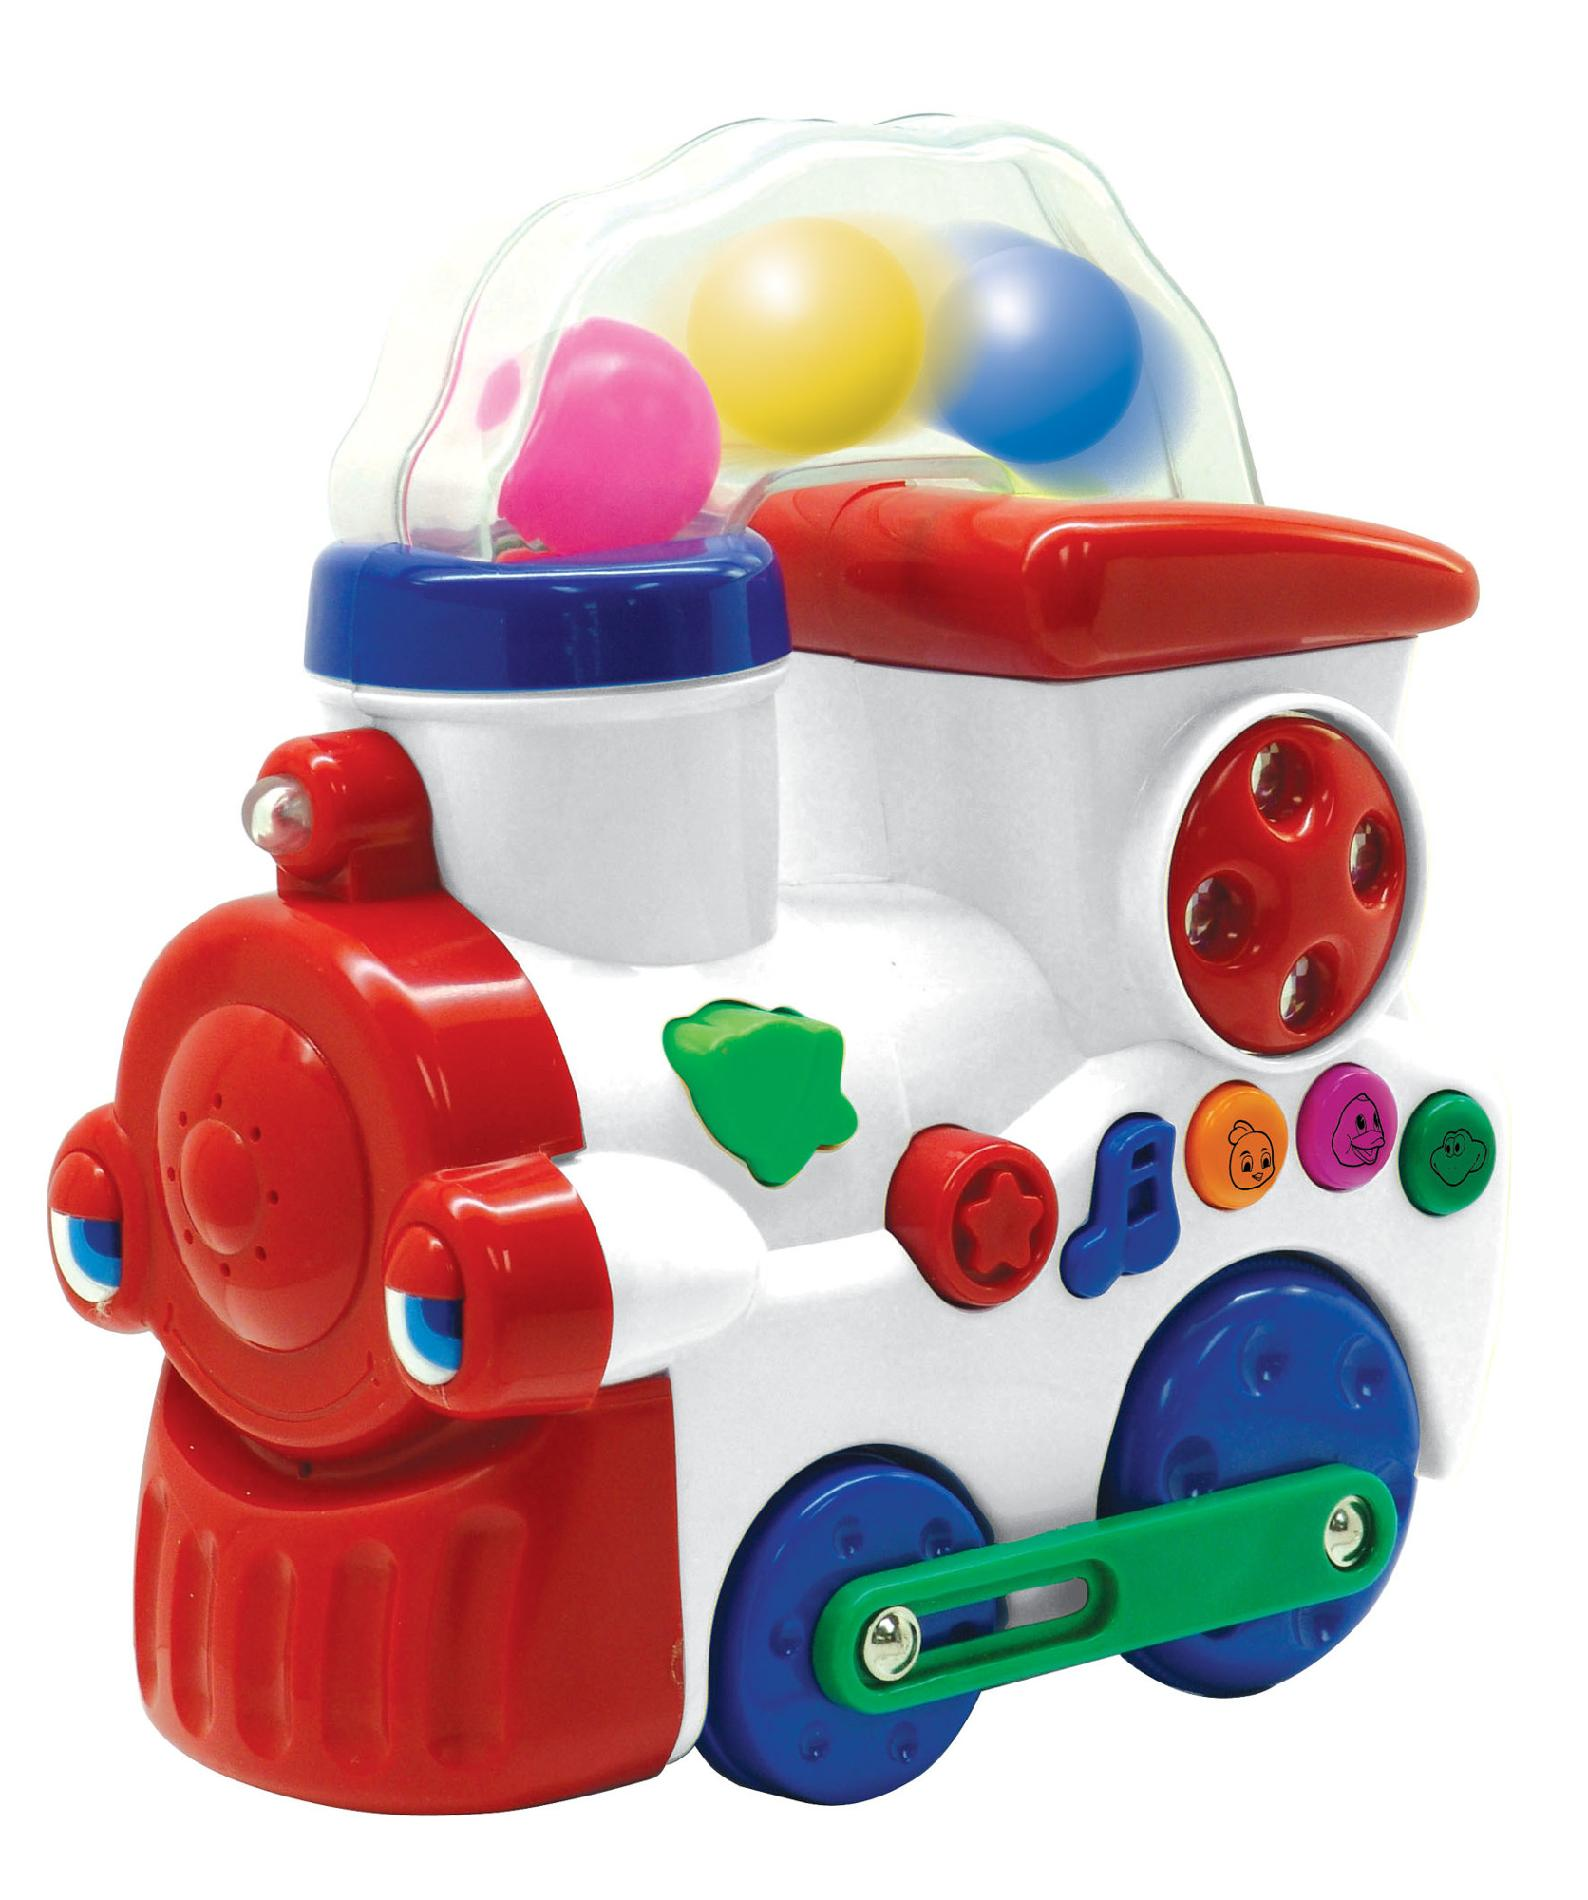 Just Kidz Musical Train Toy